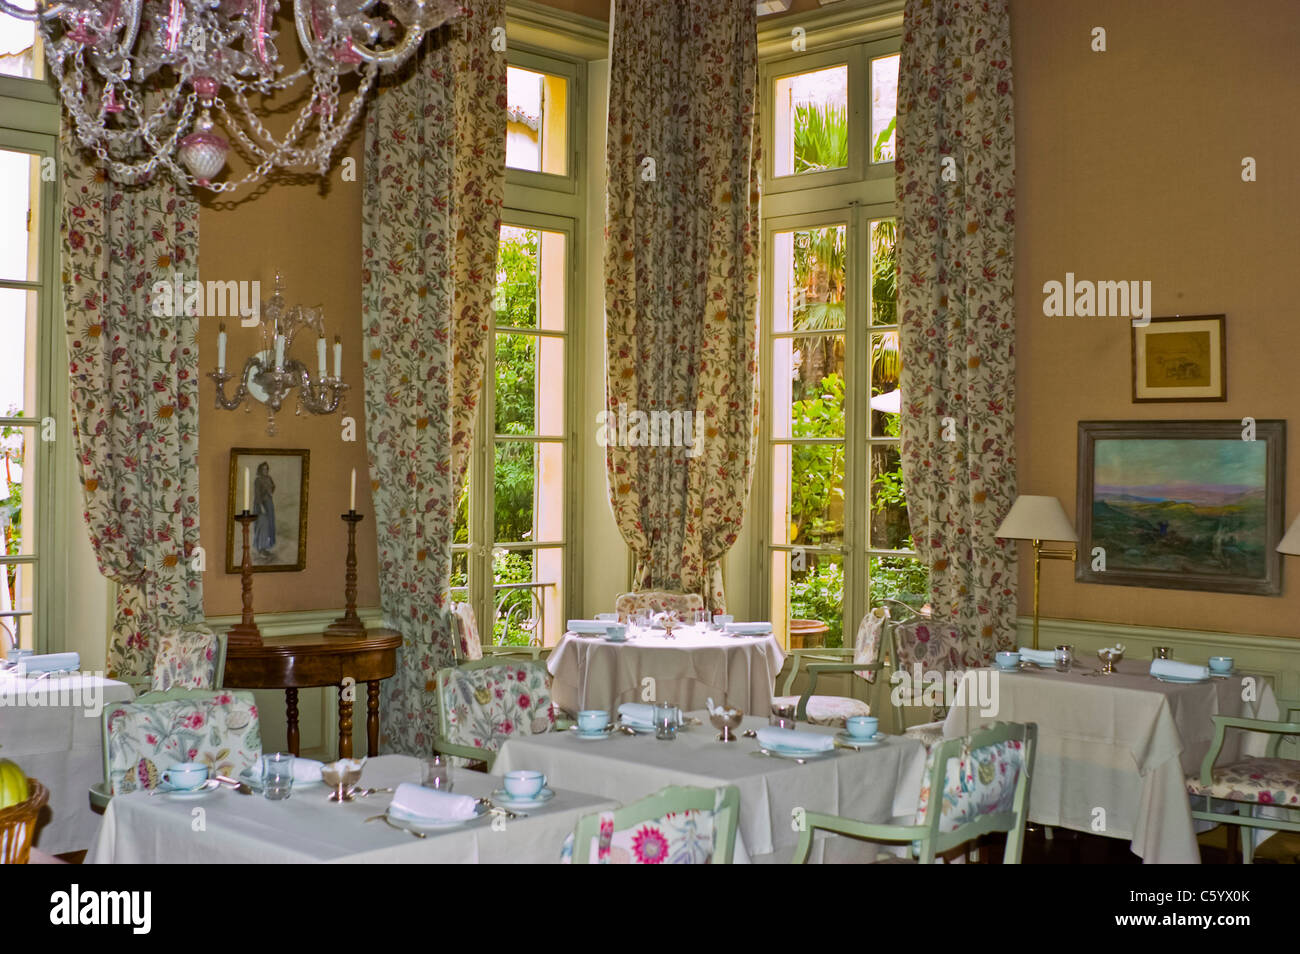 Avignon France Interior French Luxury Hotel Restaurant In Old City Stock Photo Alamy